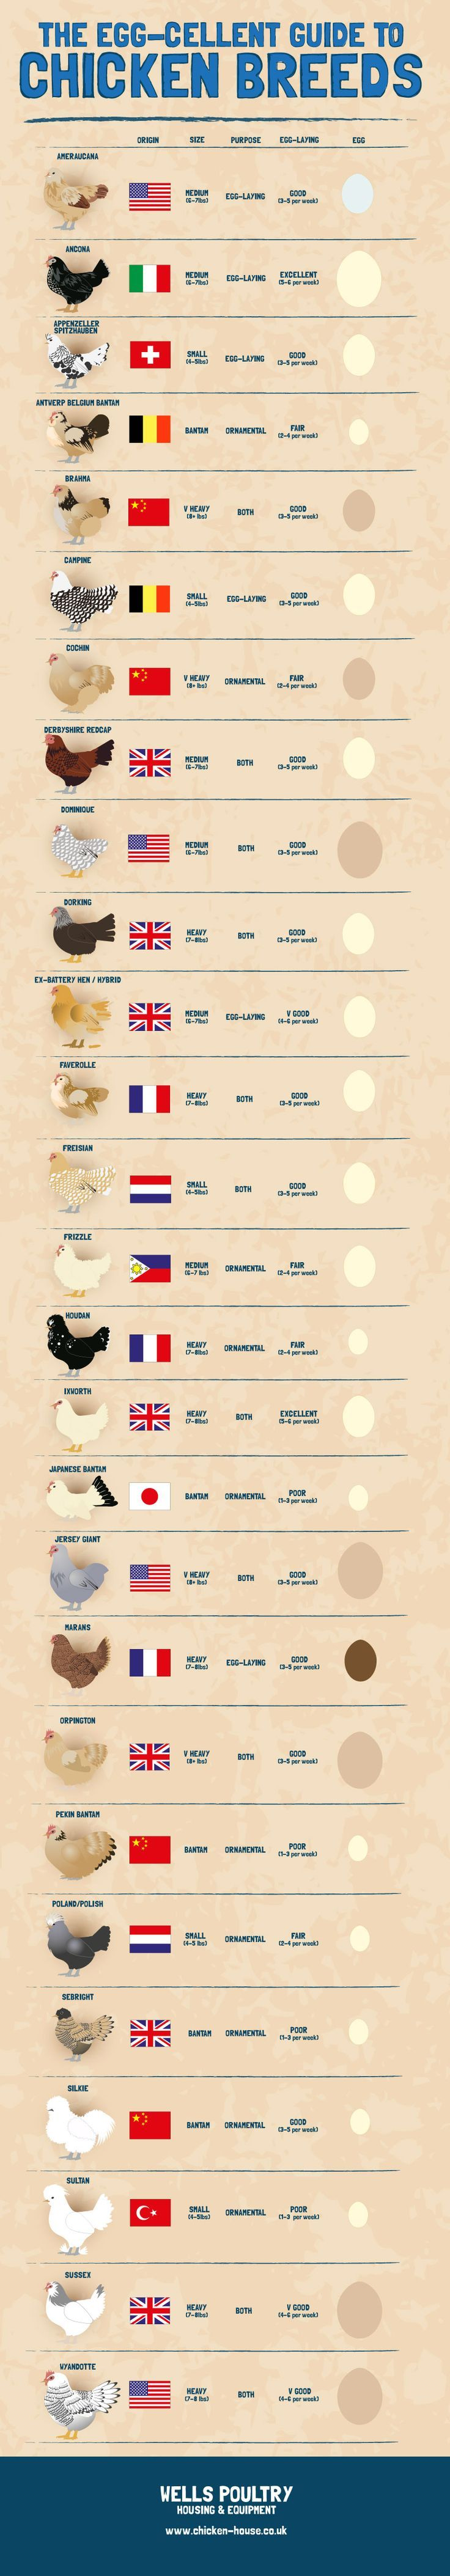 The Egg-Cellent Guide to Chicken Breeds.